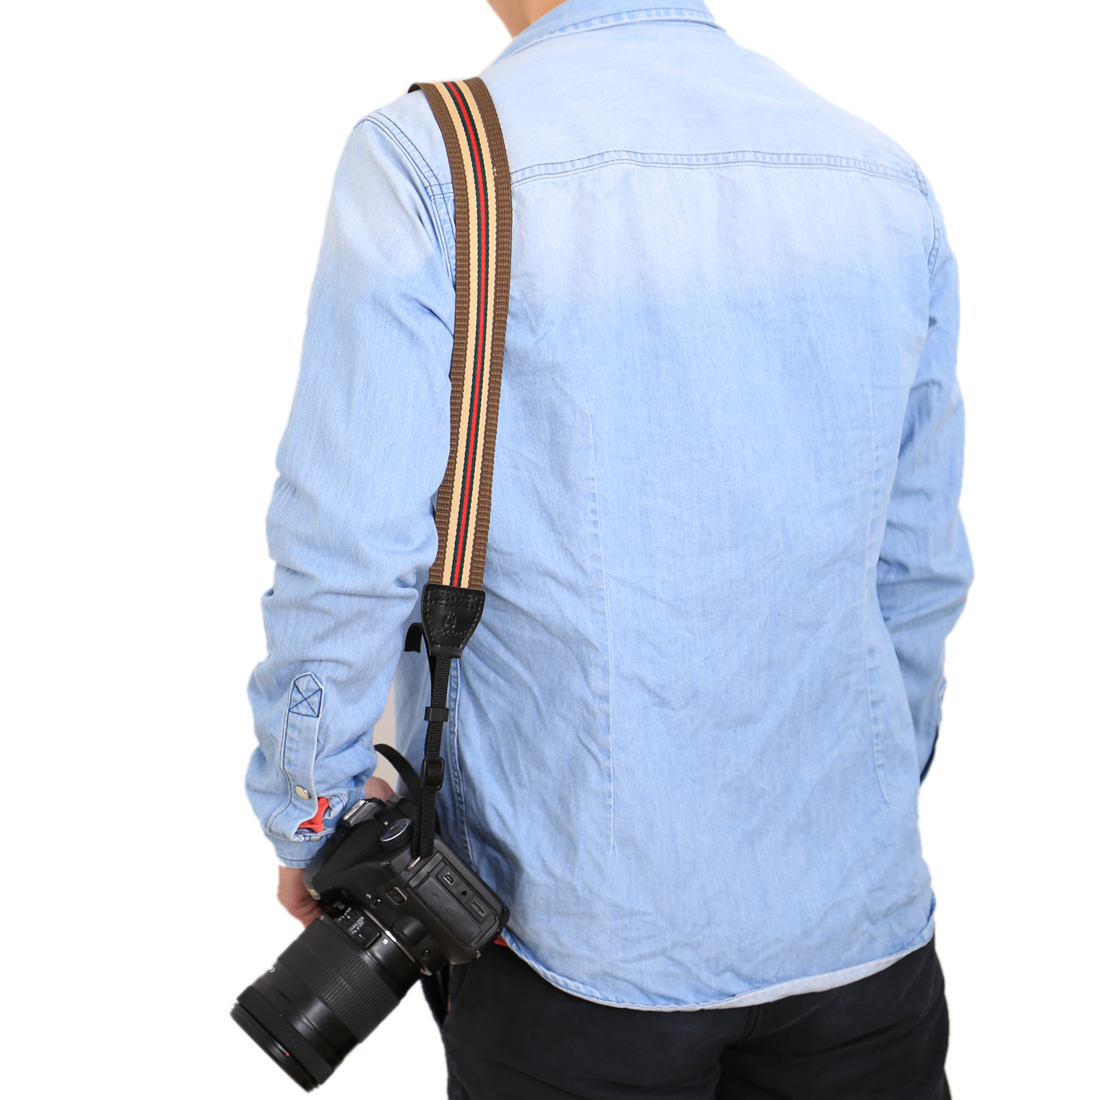 PULUZ PU6009D Retro Ethnic Style Multi-color Series Shoulder Neck Strap for SLR DSLR Camera